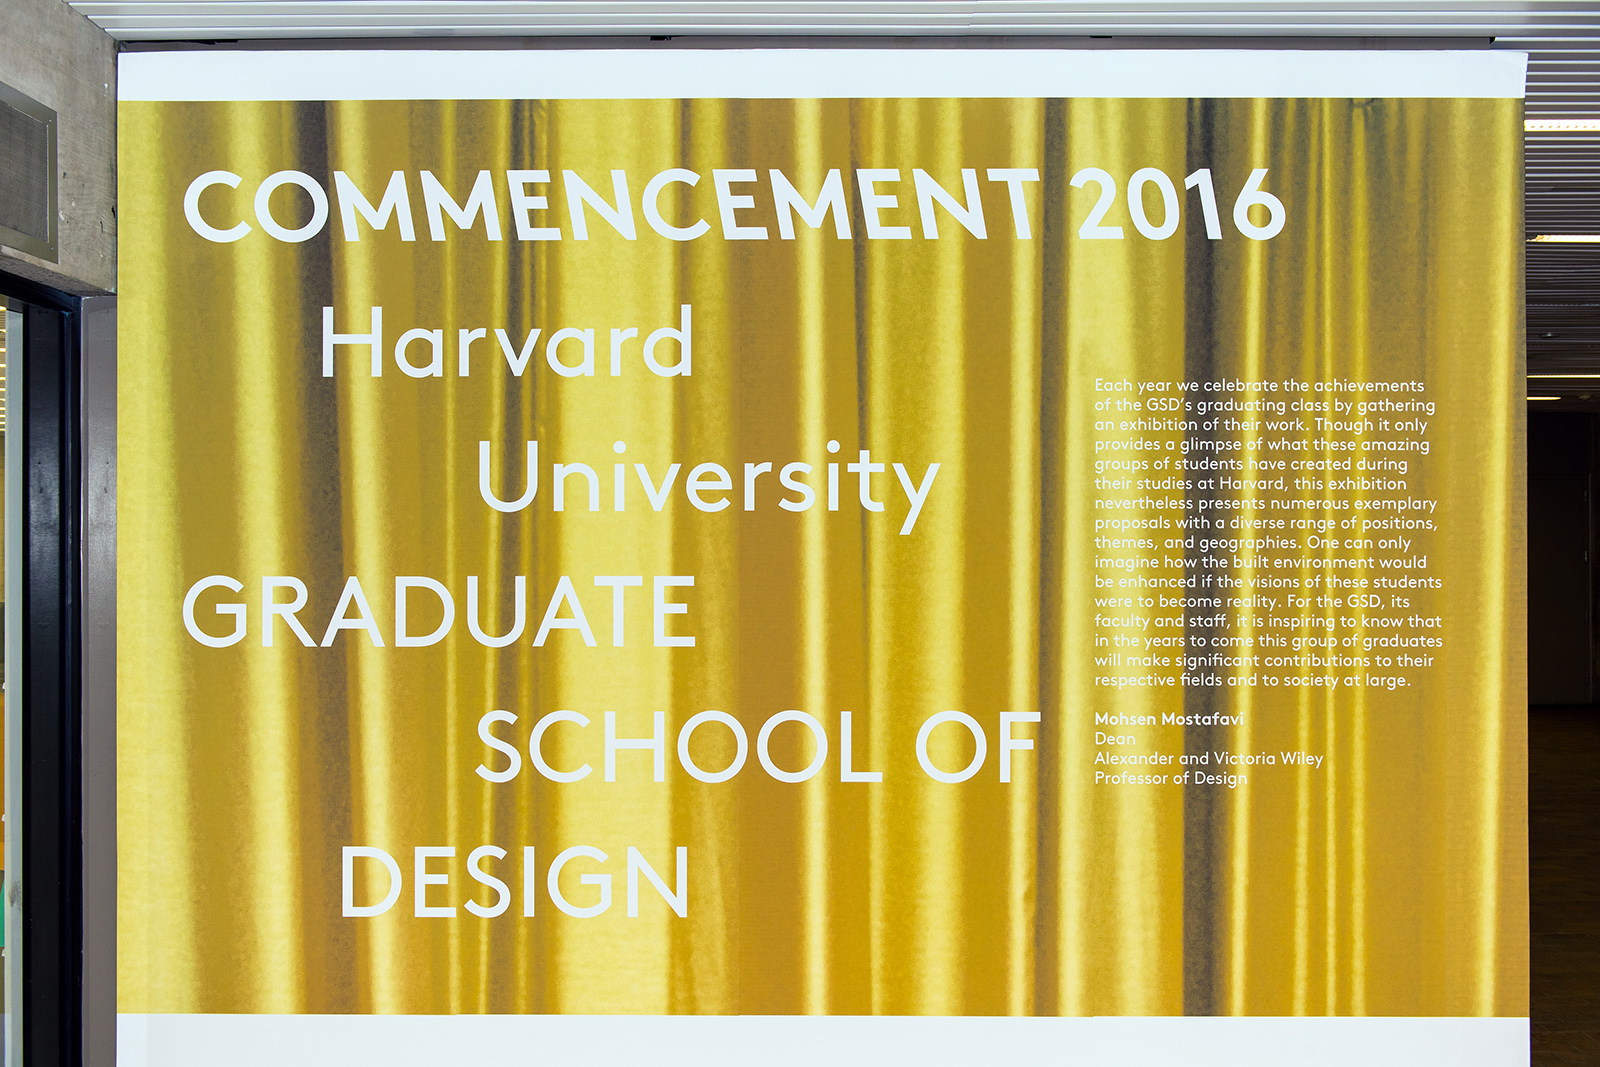 060716_Commencement_2016_Exhibit_062.jpg